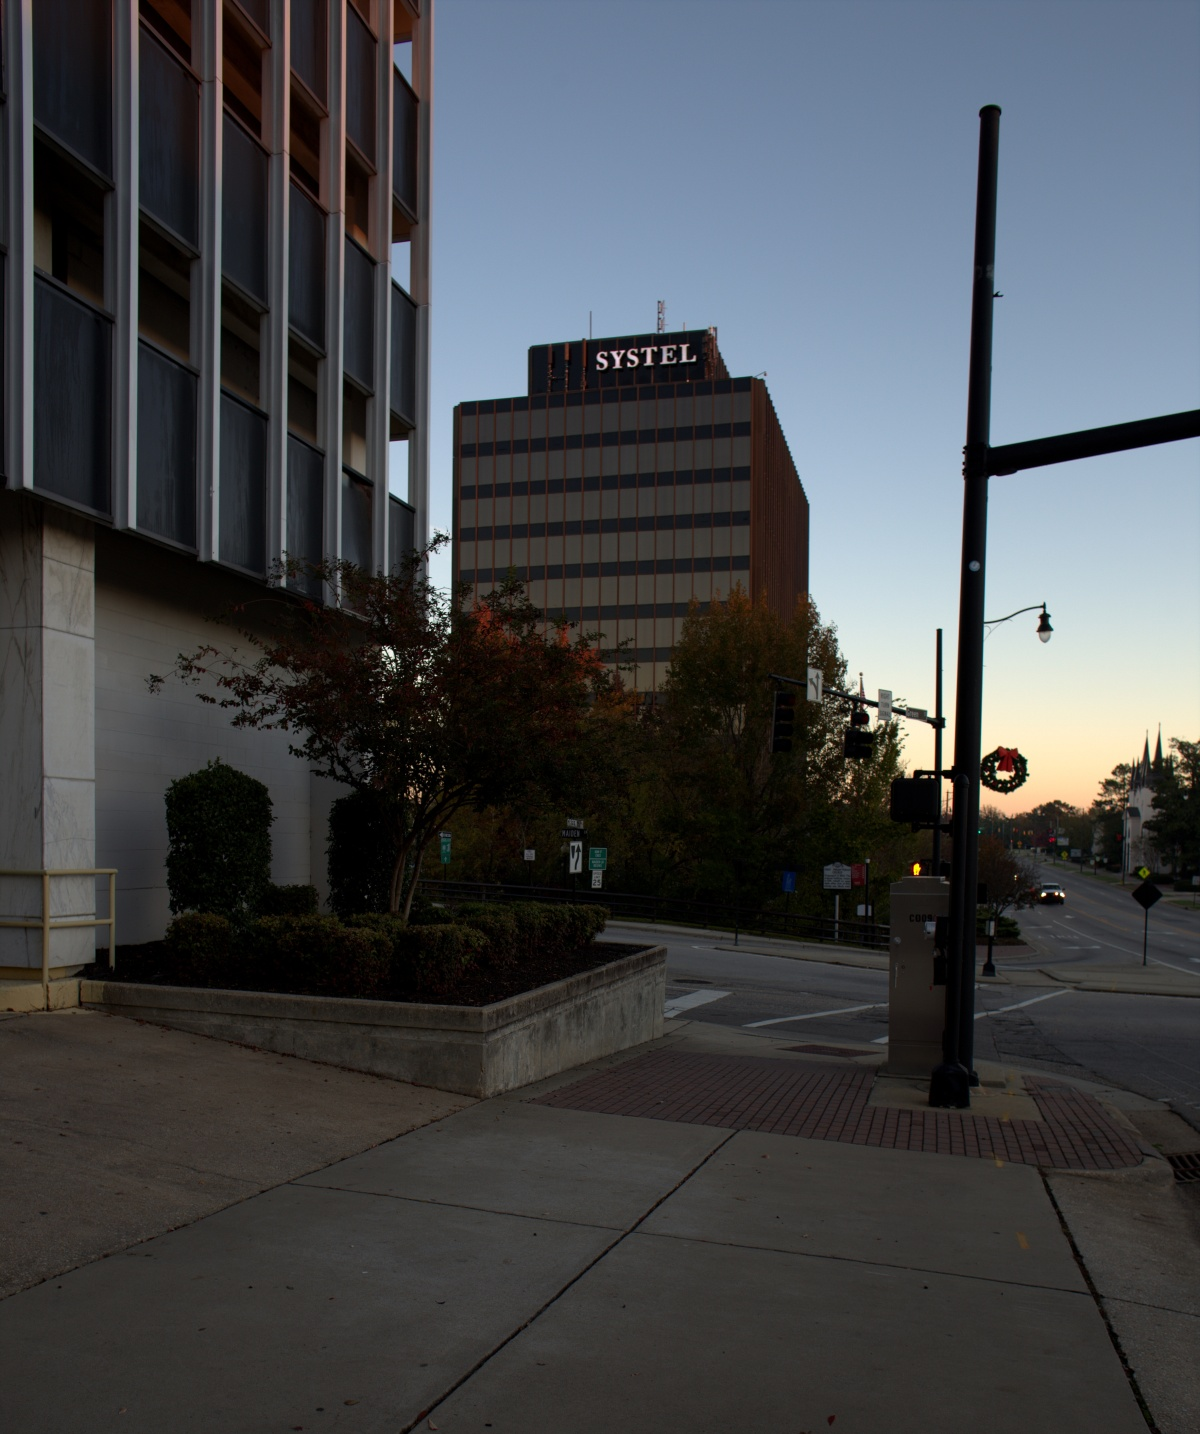 Photography ~ The Systel Building at Dawn, Downtown Fayetteville, North Carolina, 11/17